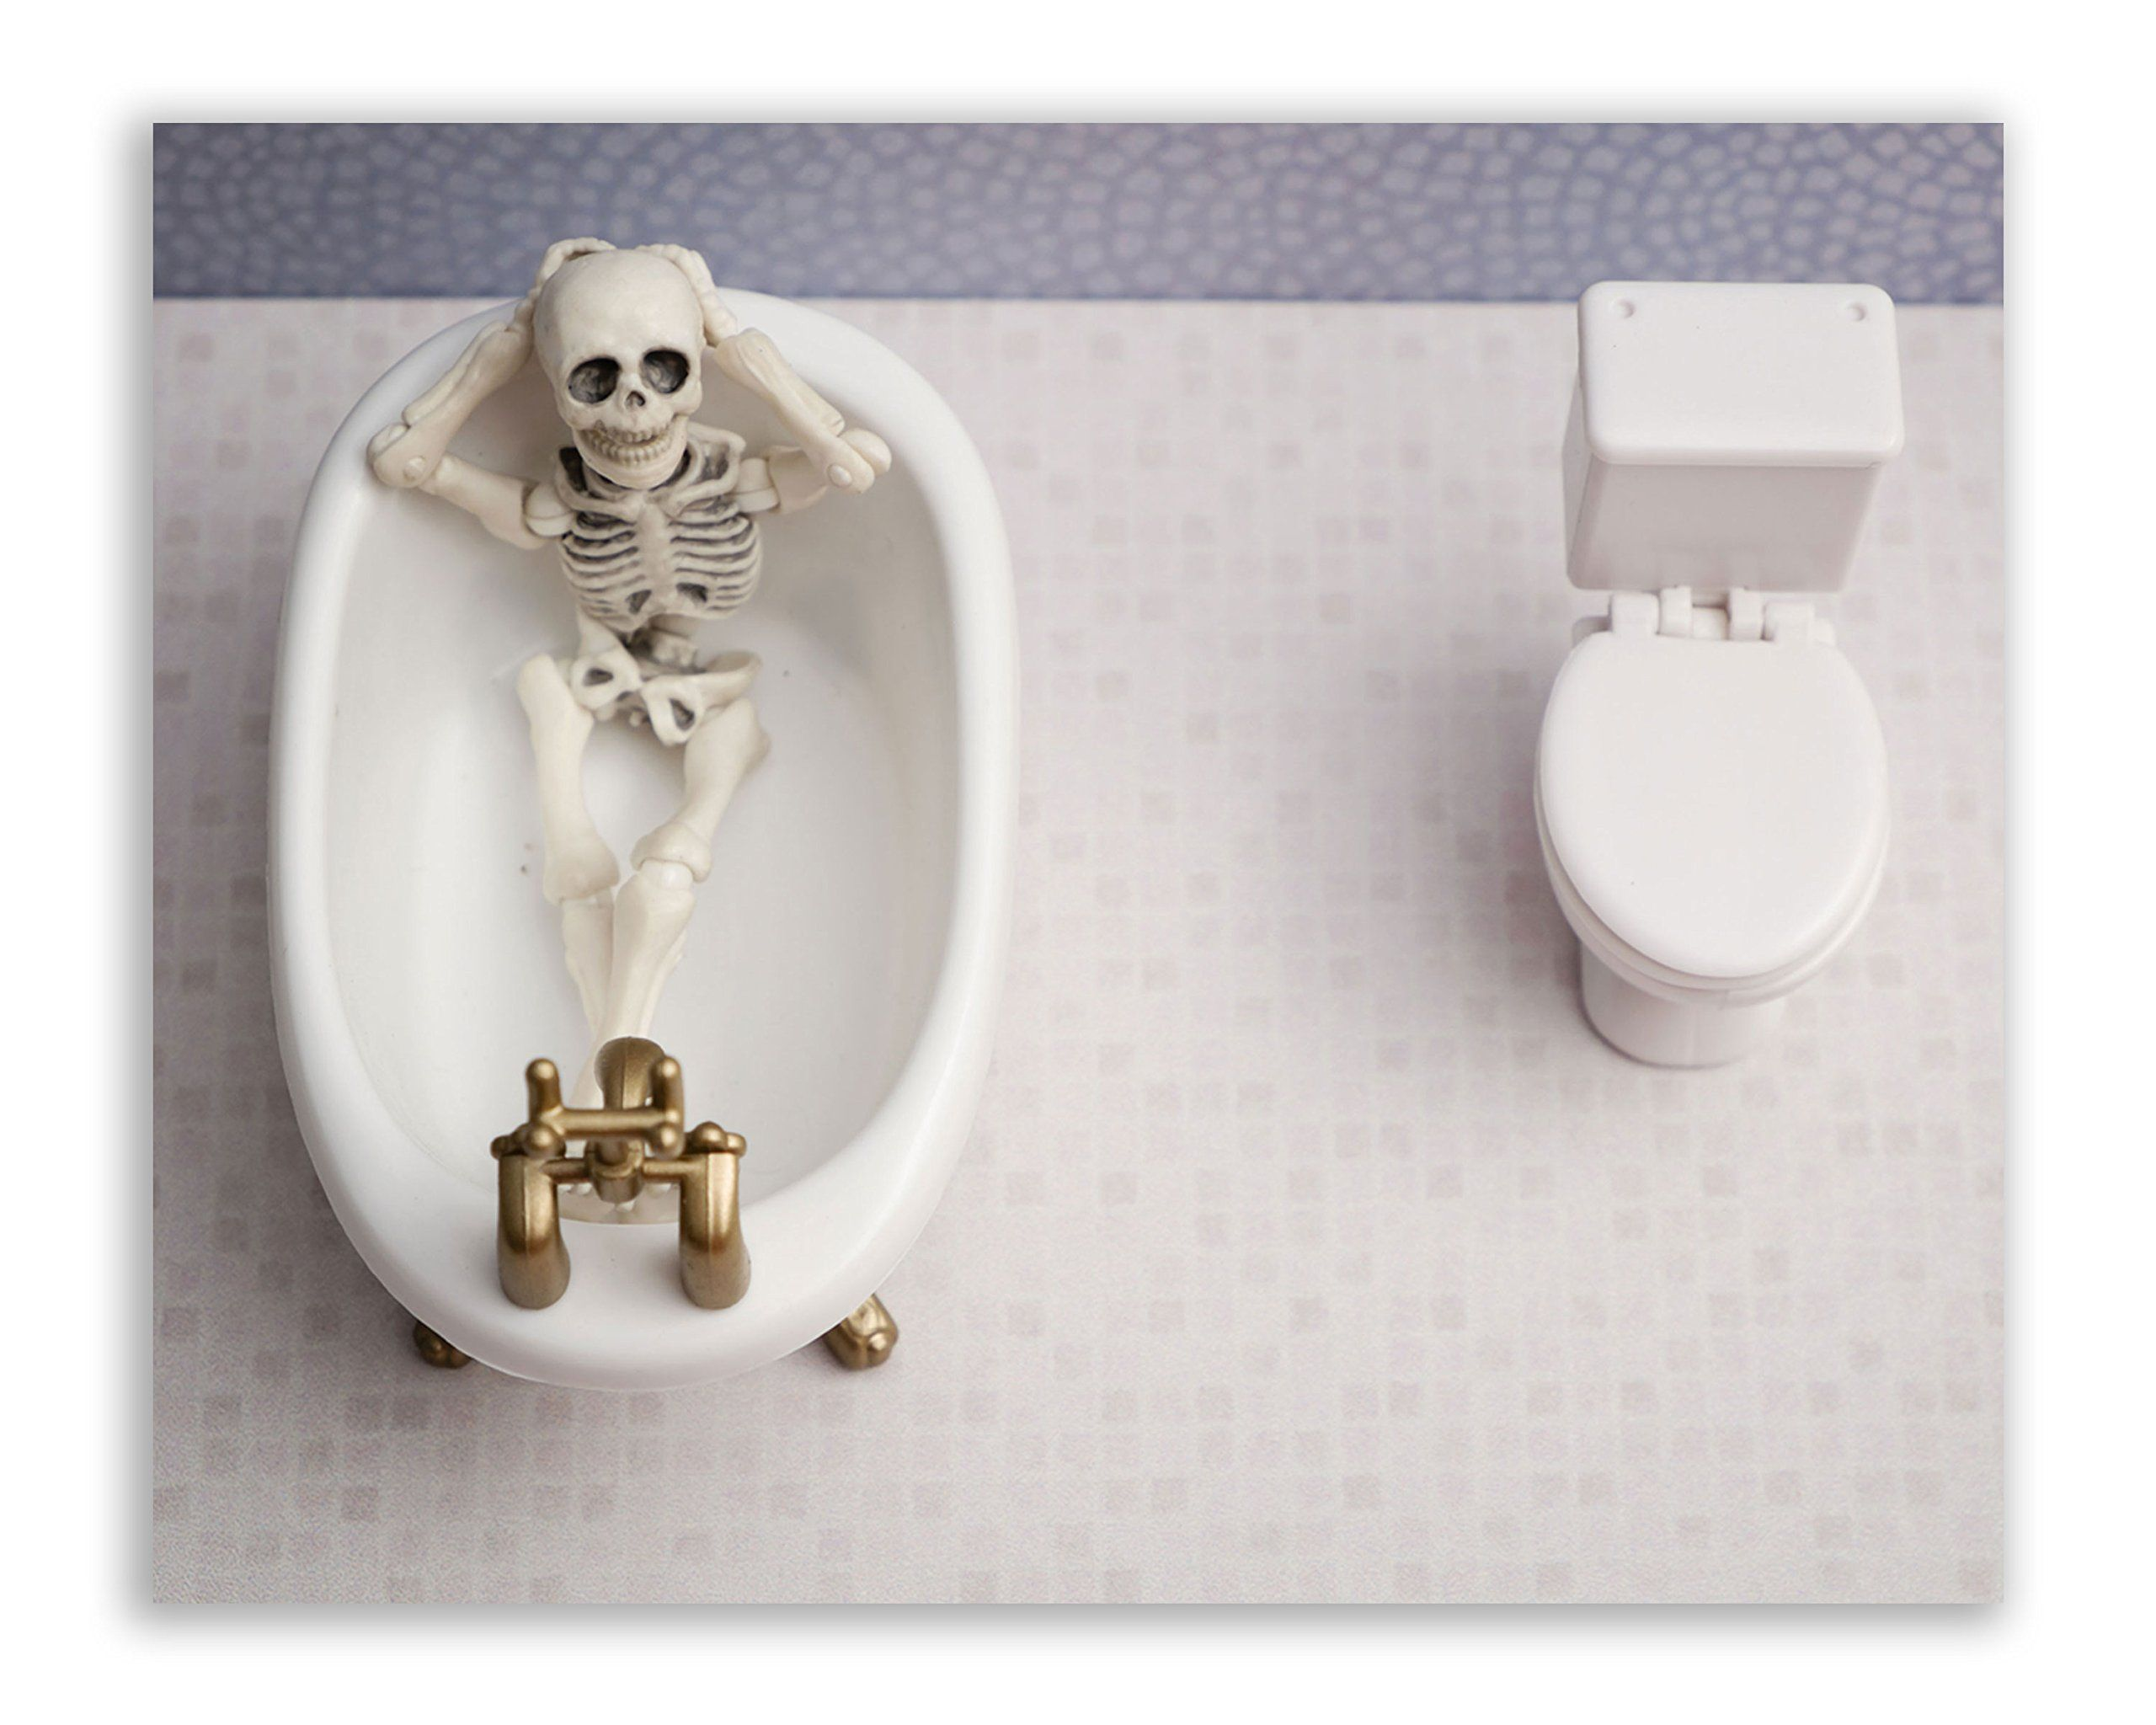 Skeleton Bathroom Prints Funny Hipster Skull And Bones Wall Art Decor Set Of 4 8 X 10 Photos Find Out More A Skull And Bones Hipster Funny Bathroom Decor